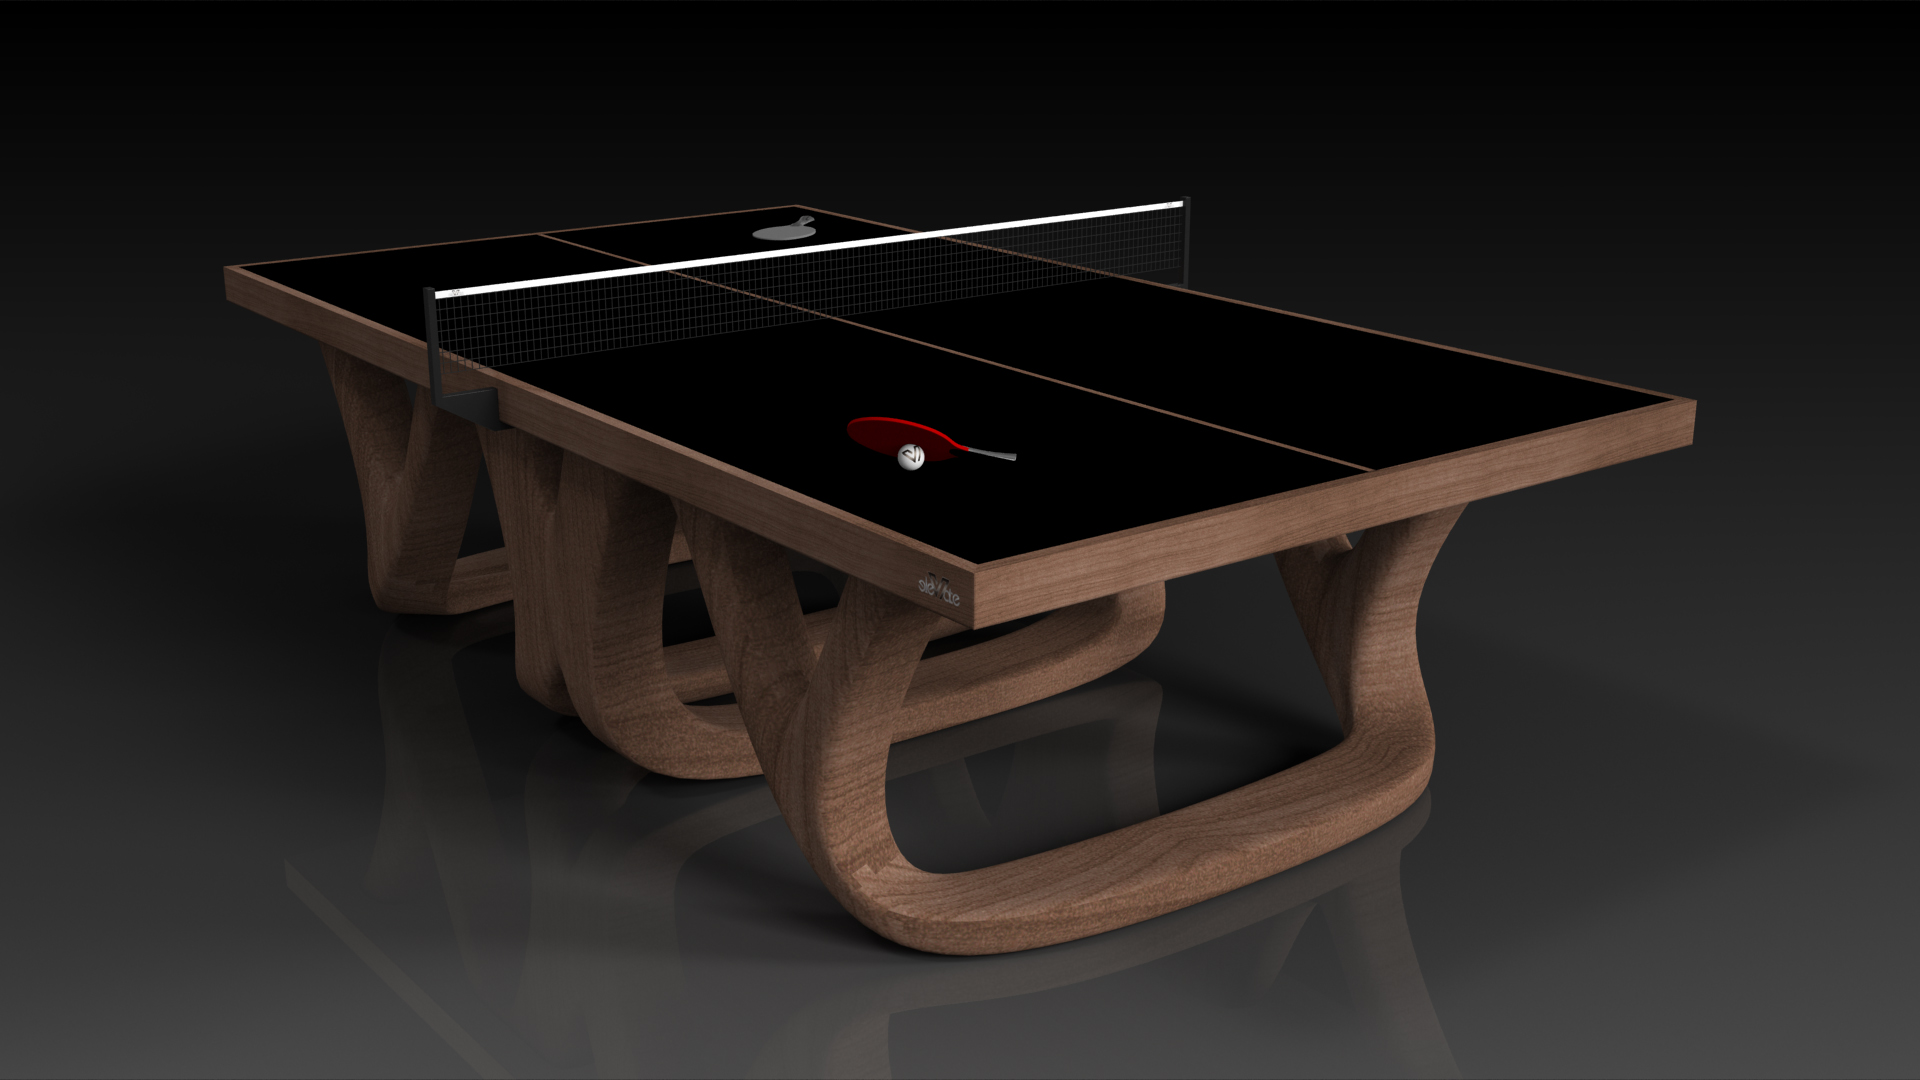 Elevate customs modern design draco Ping Pong Table tennis walnut 4